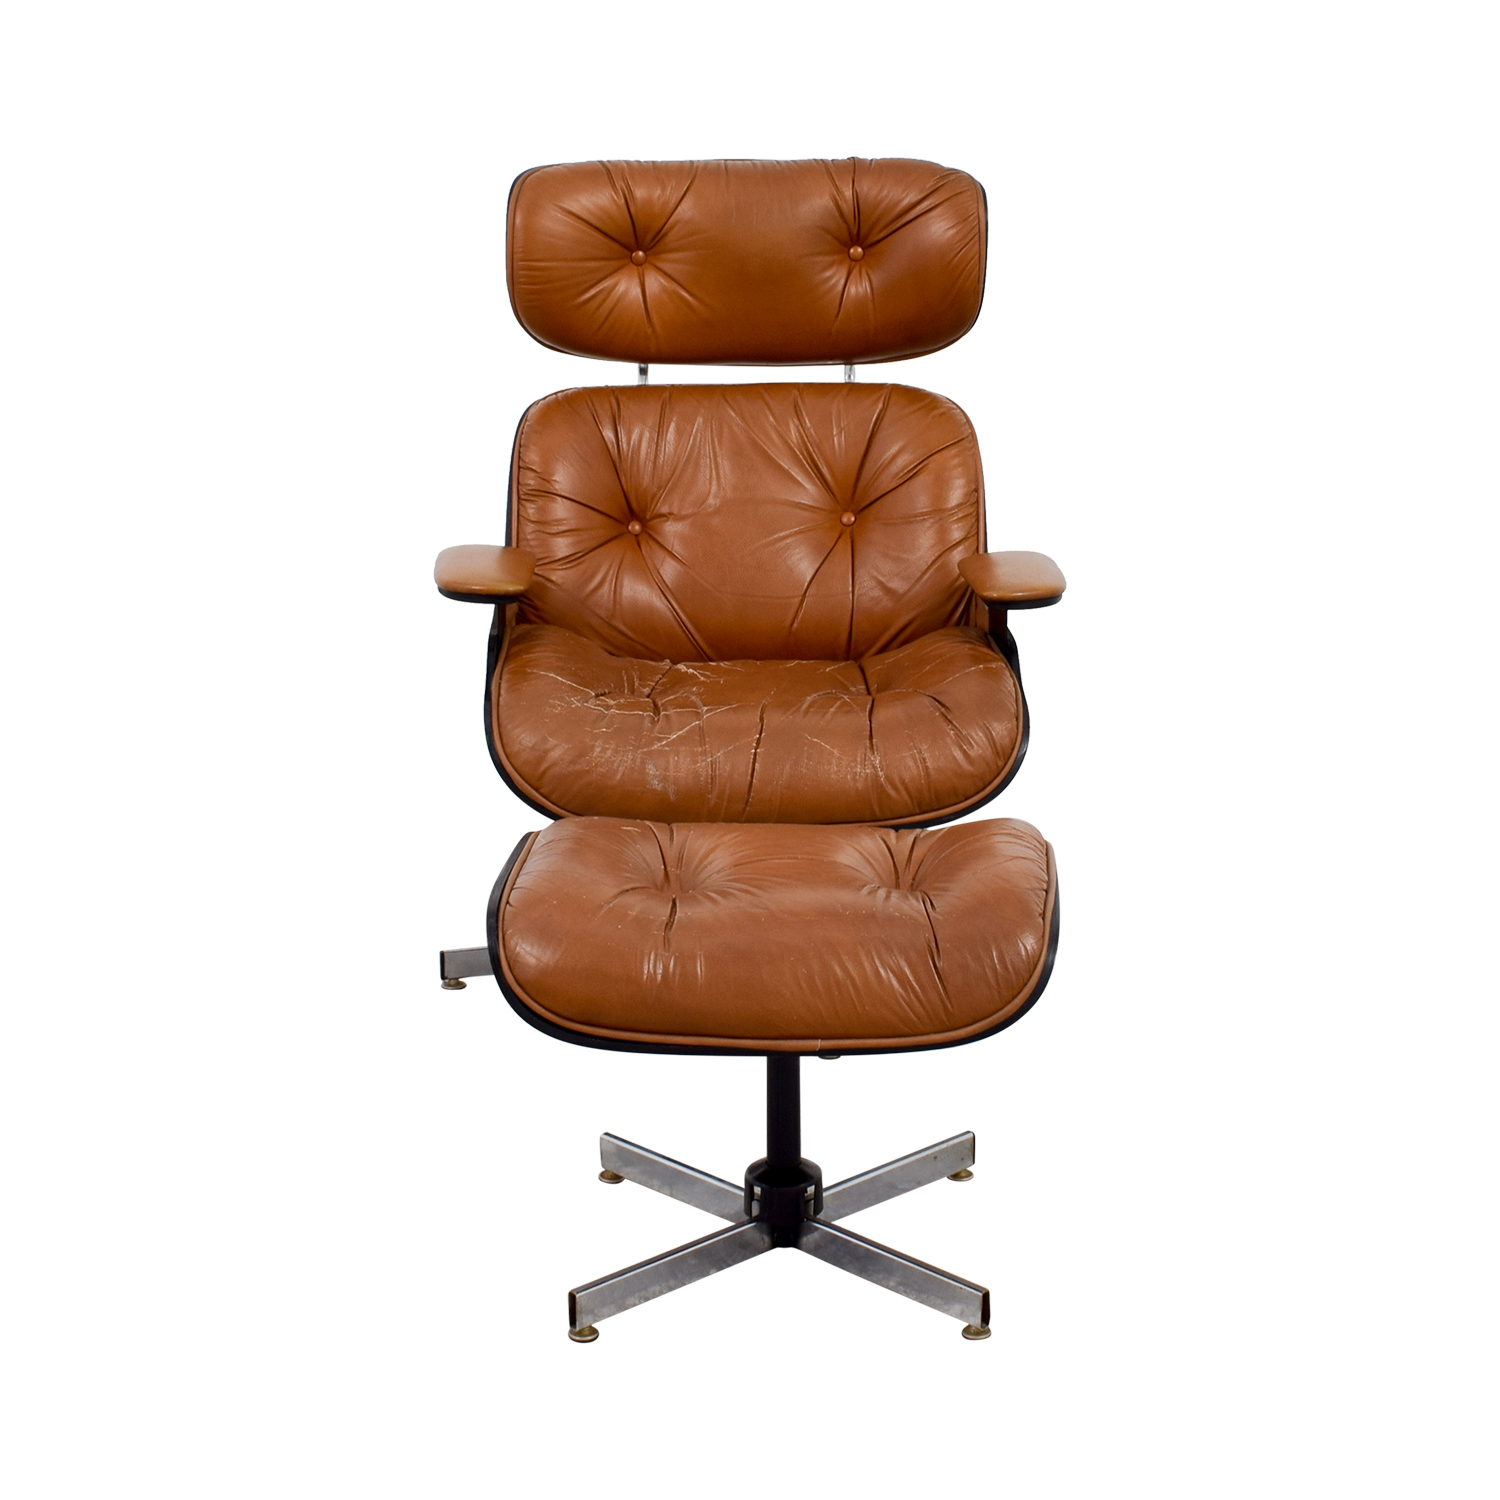 Eames Replica Leather Chair with Ottoman sale